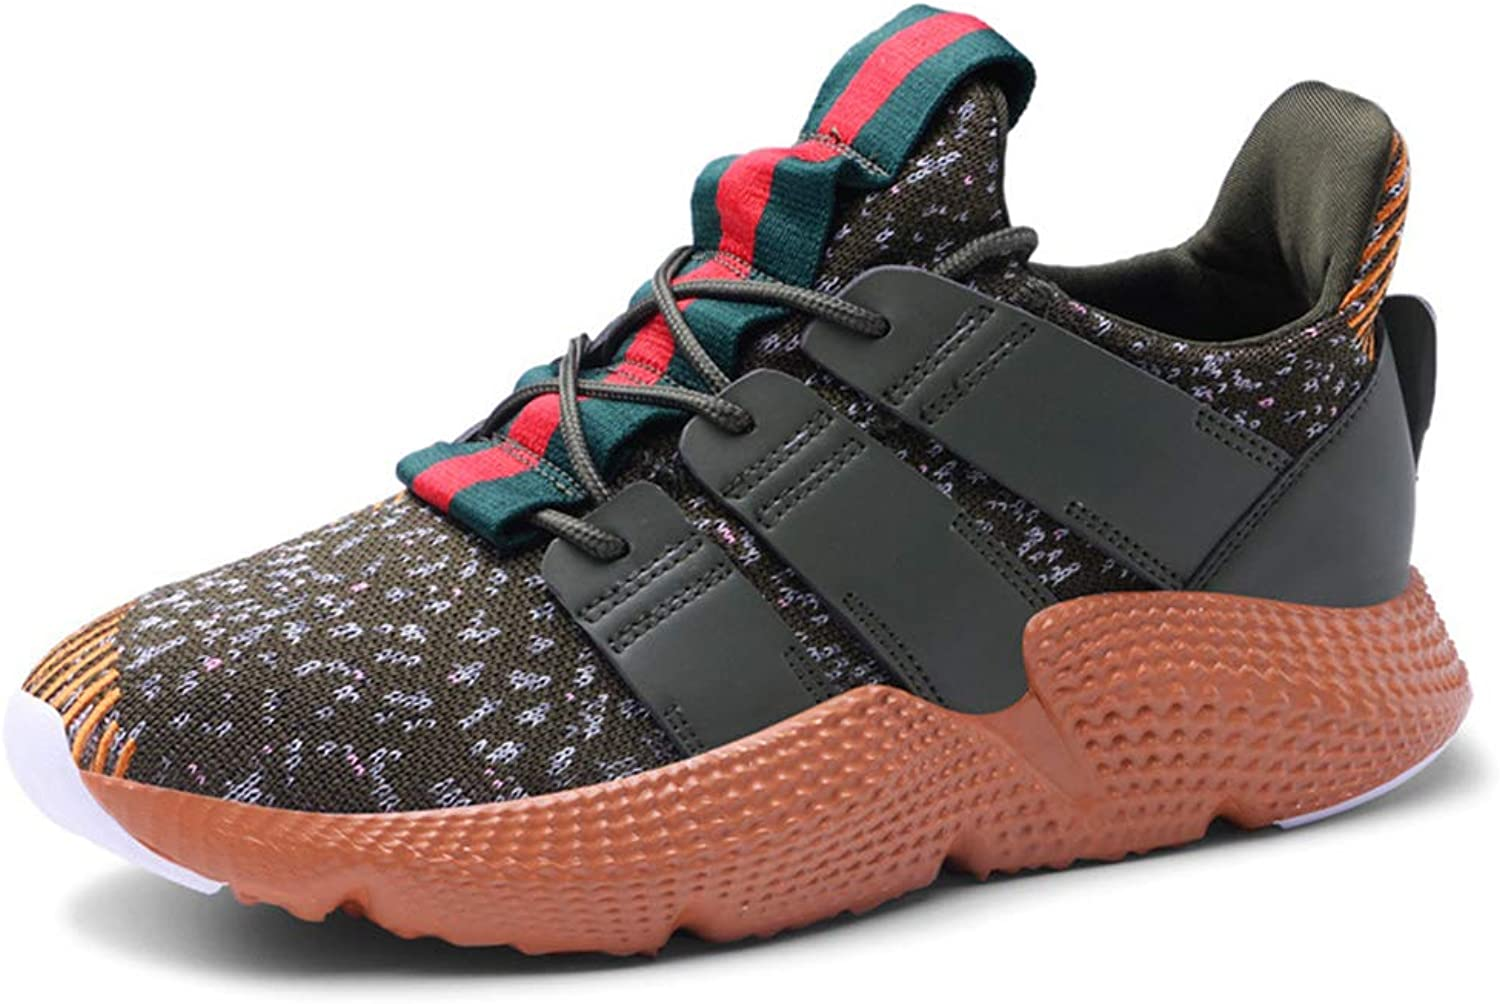 Unisex Sneakers, Breathable Cozy Trainer Fitness Running shoes, Travel, Jogging, Sports shoes